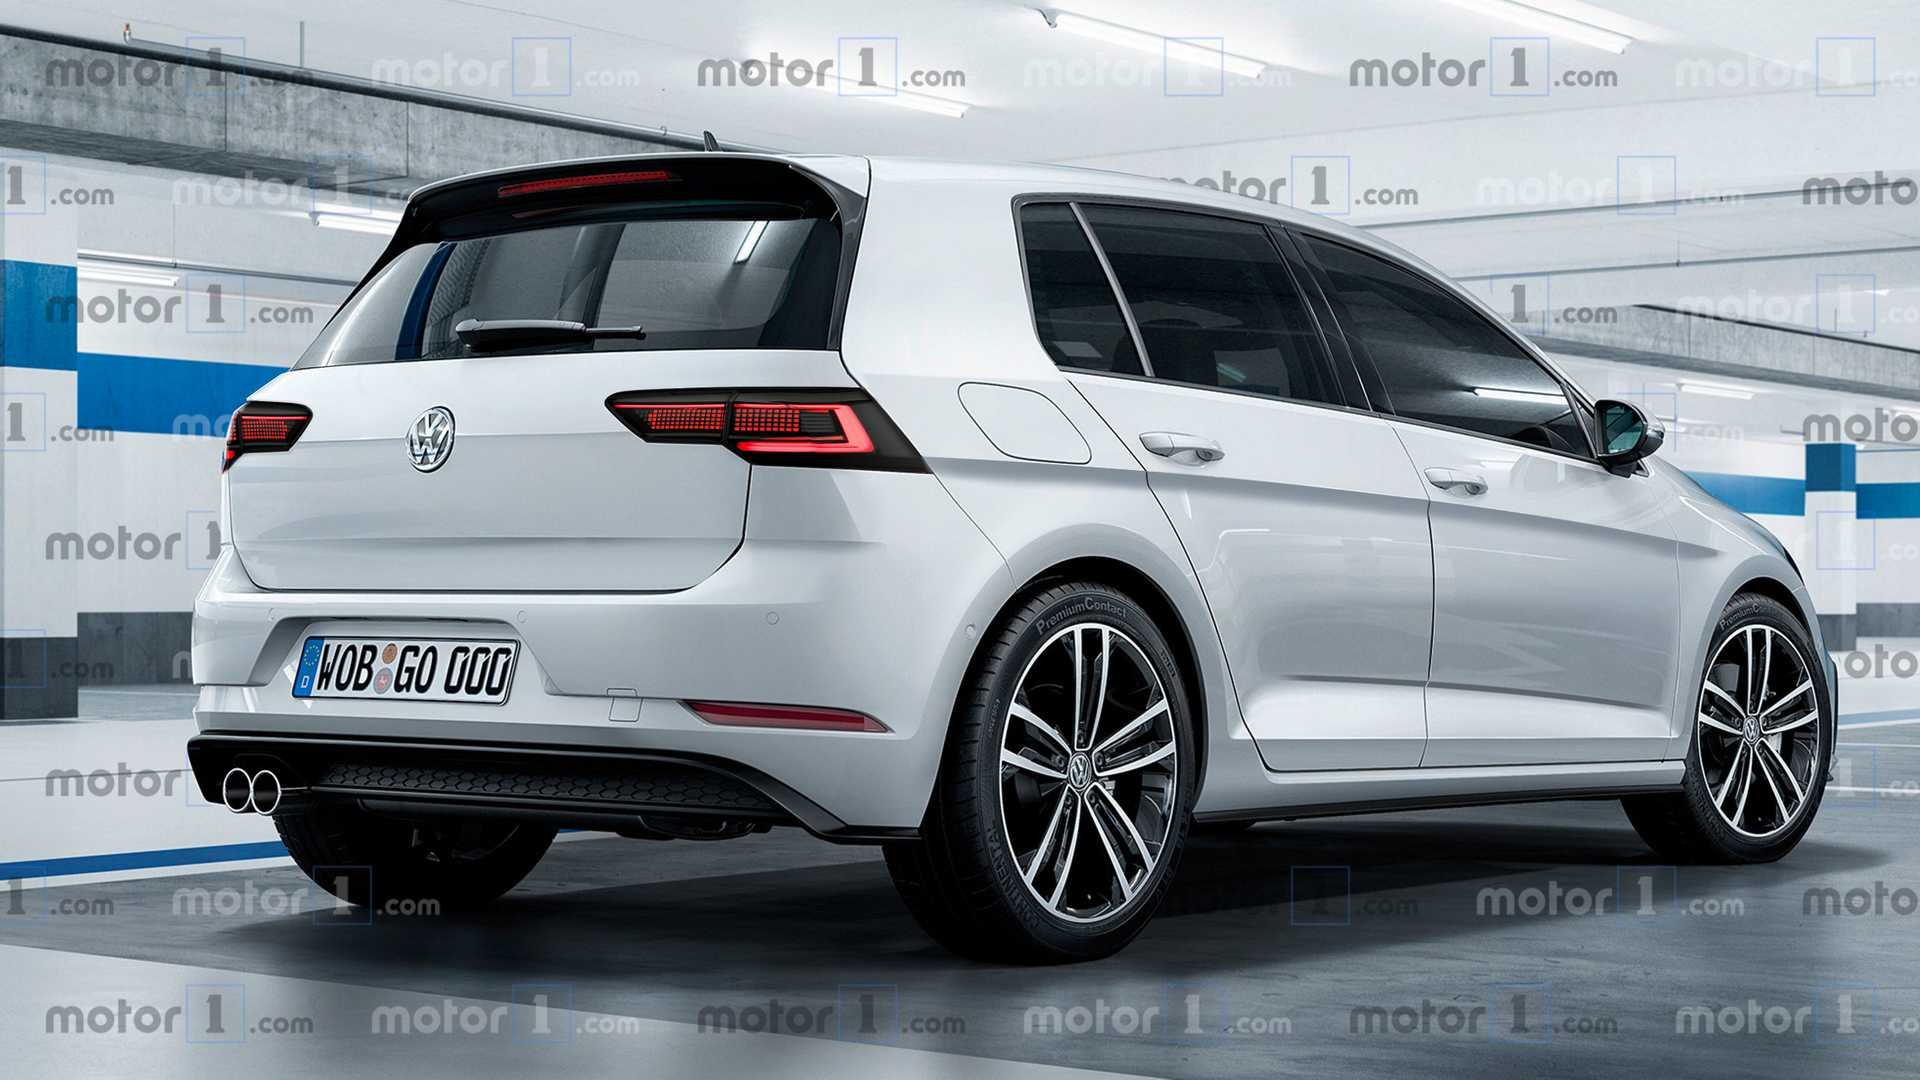 21 All New 2020 Volkswagen Golf Release Date Wallpaper by 2020 Volkswagen Golf Release Date